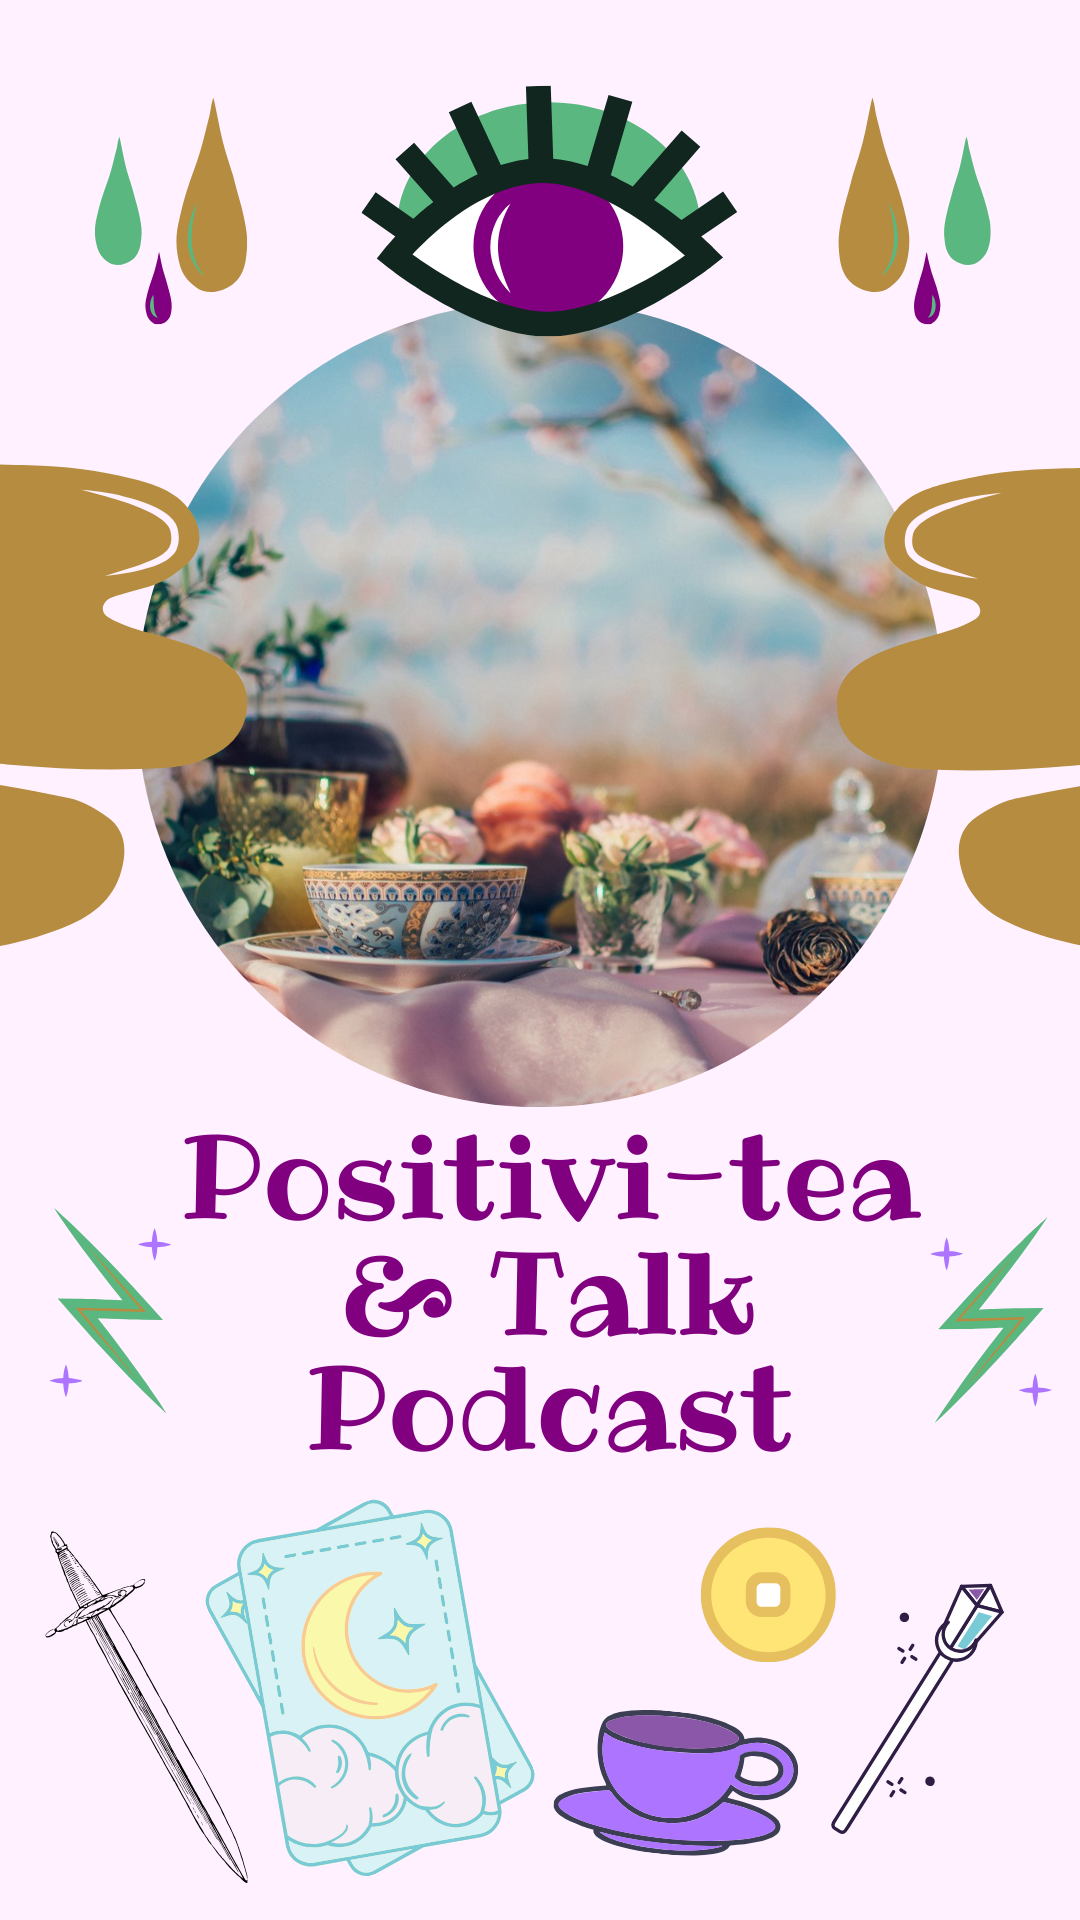 Follow the link to be taken to the Positivitea & Talk